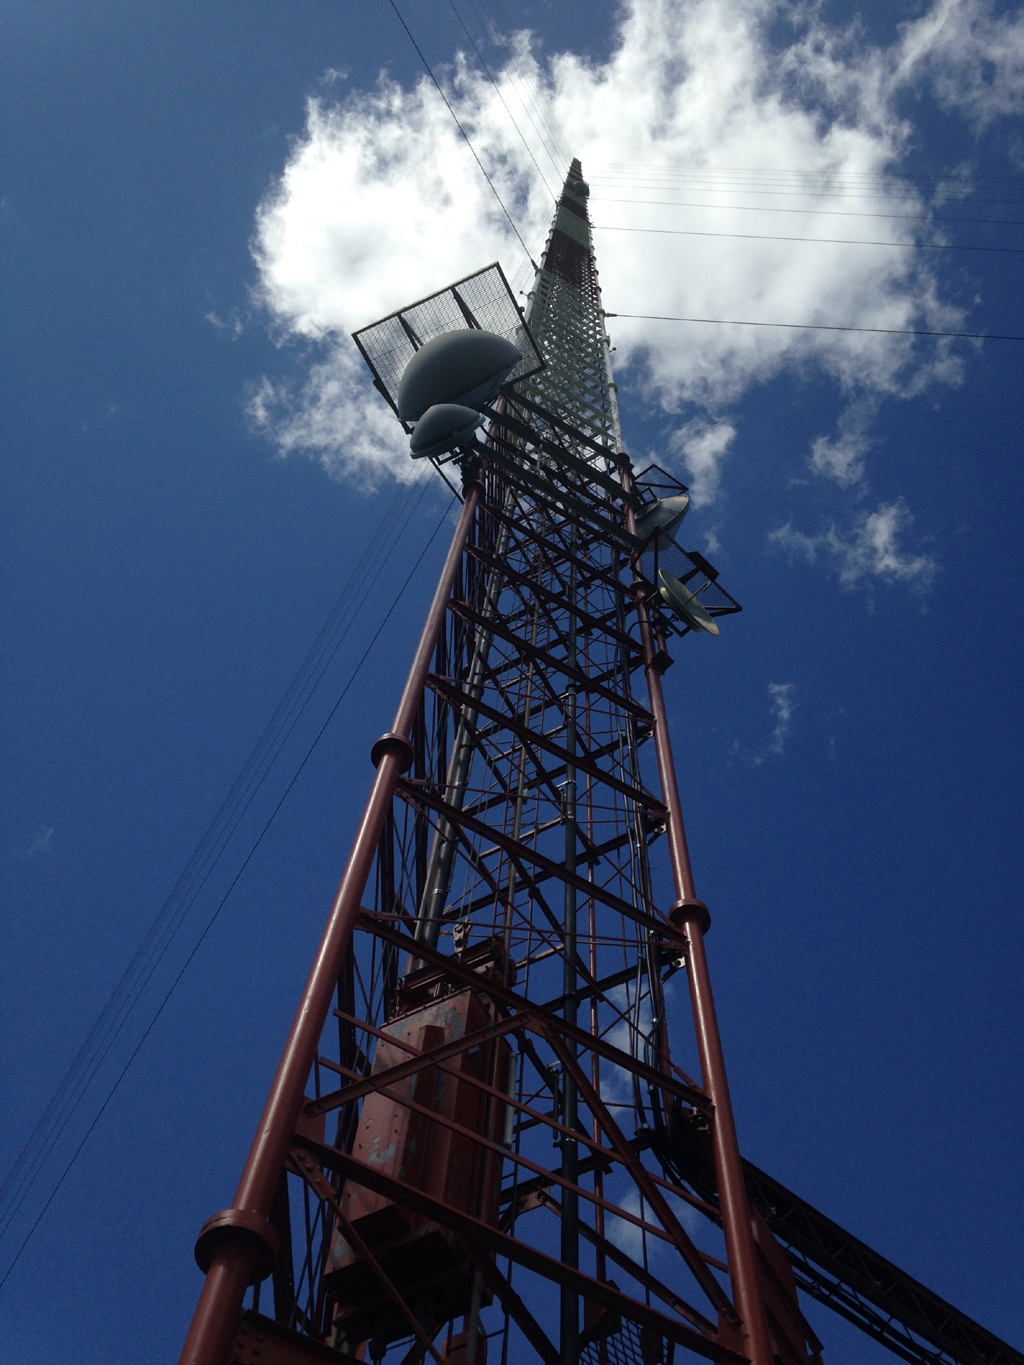 Extremely tall television transmitting tower.